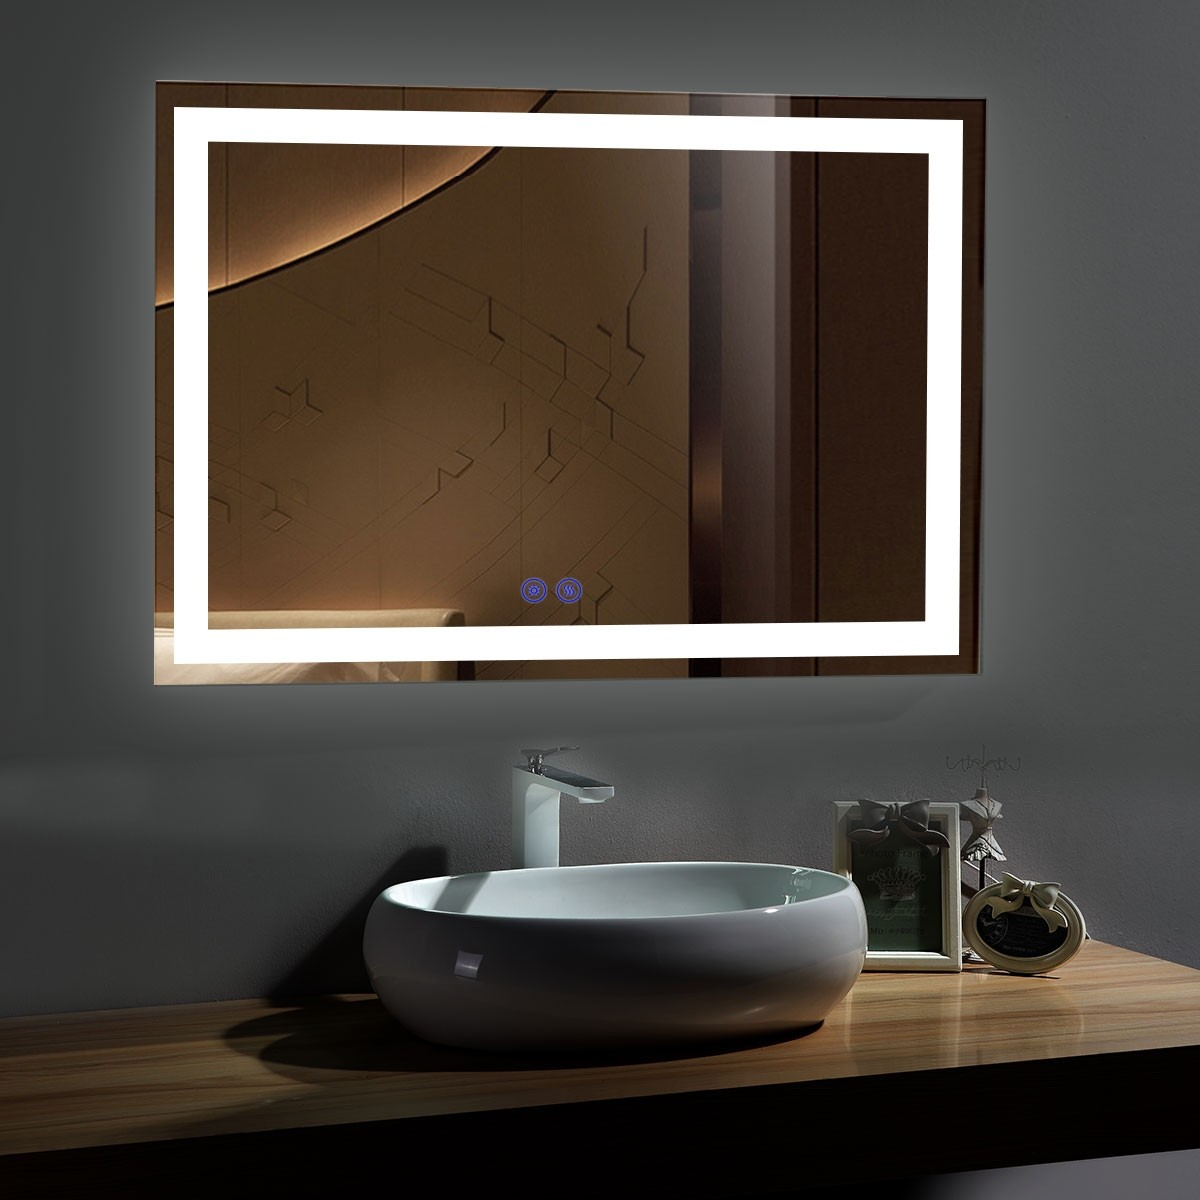 DECORAPORT 55 x 36 Inch LED Bathroom Mirror with Touch Button, Anti Fog, Dimmable, Vertical & Horizontal Mount (CT05-5536)